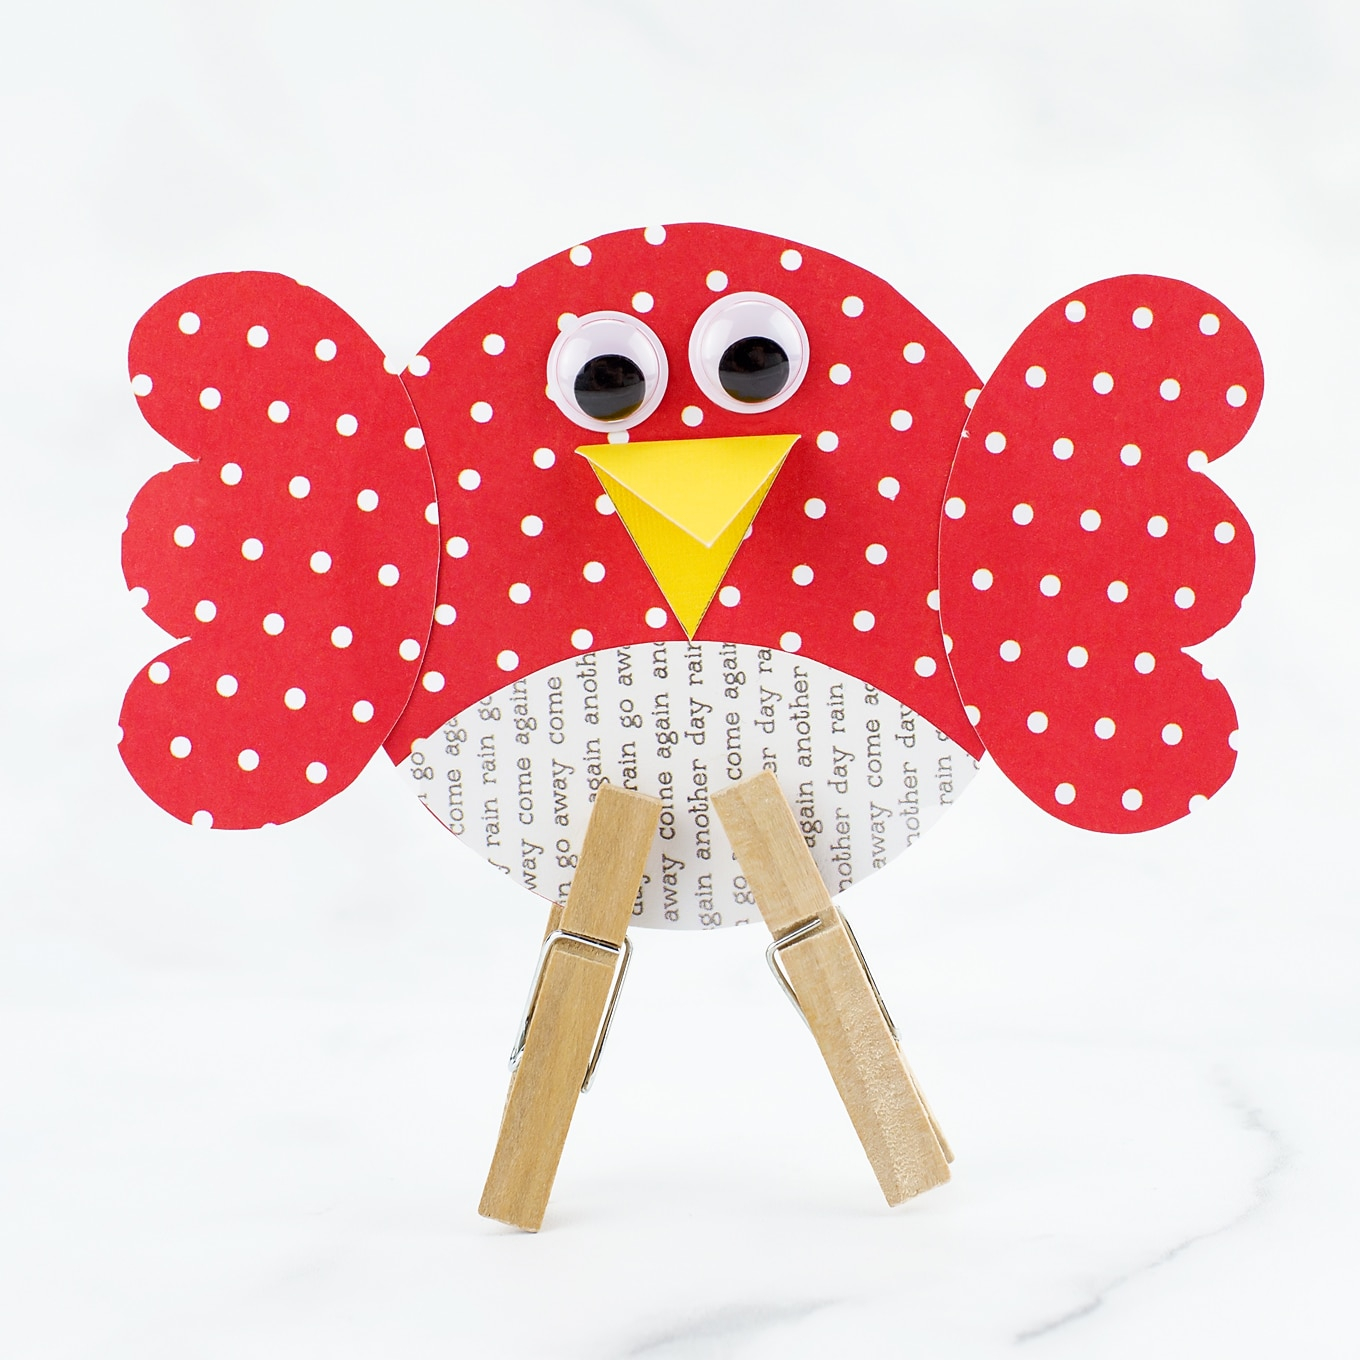 Simple paper craft for preschoolers How To Make An Easy And Fun Paper Bird Craft